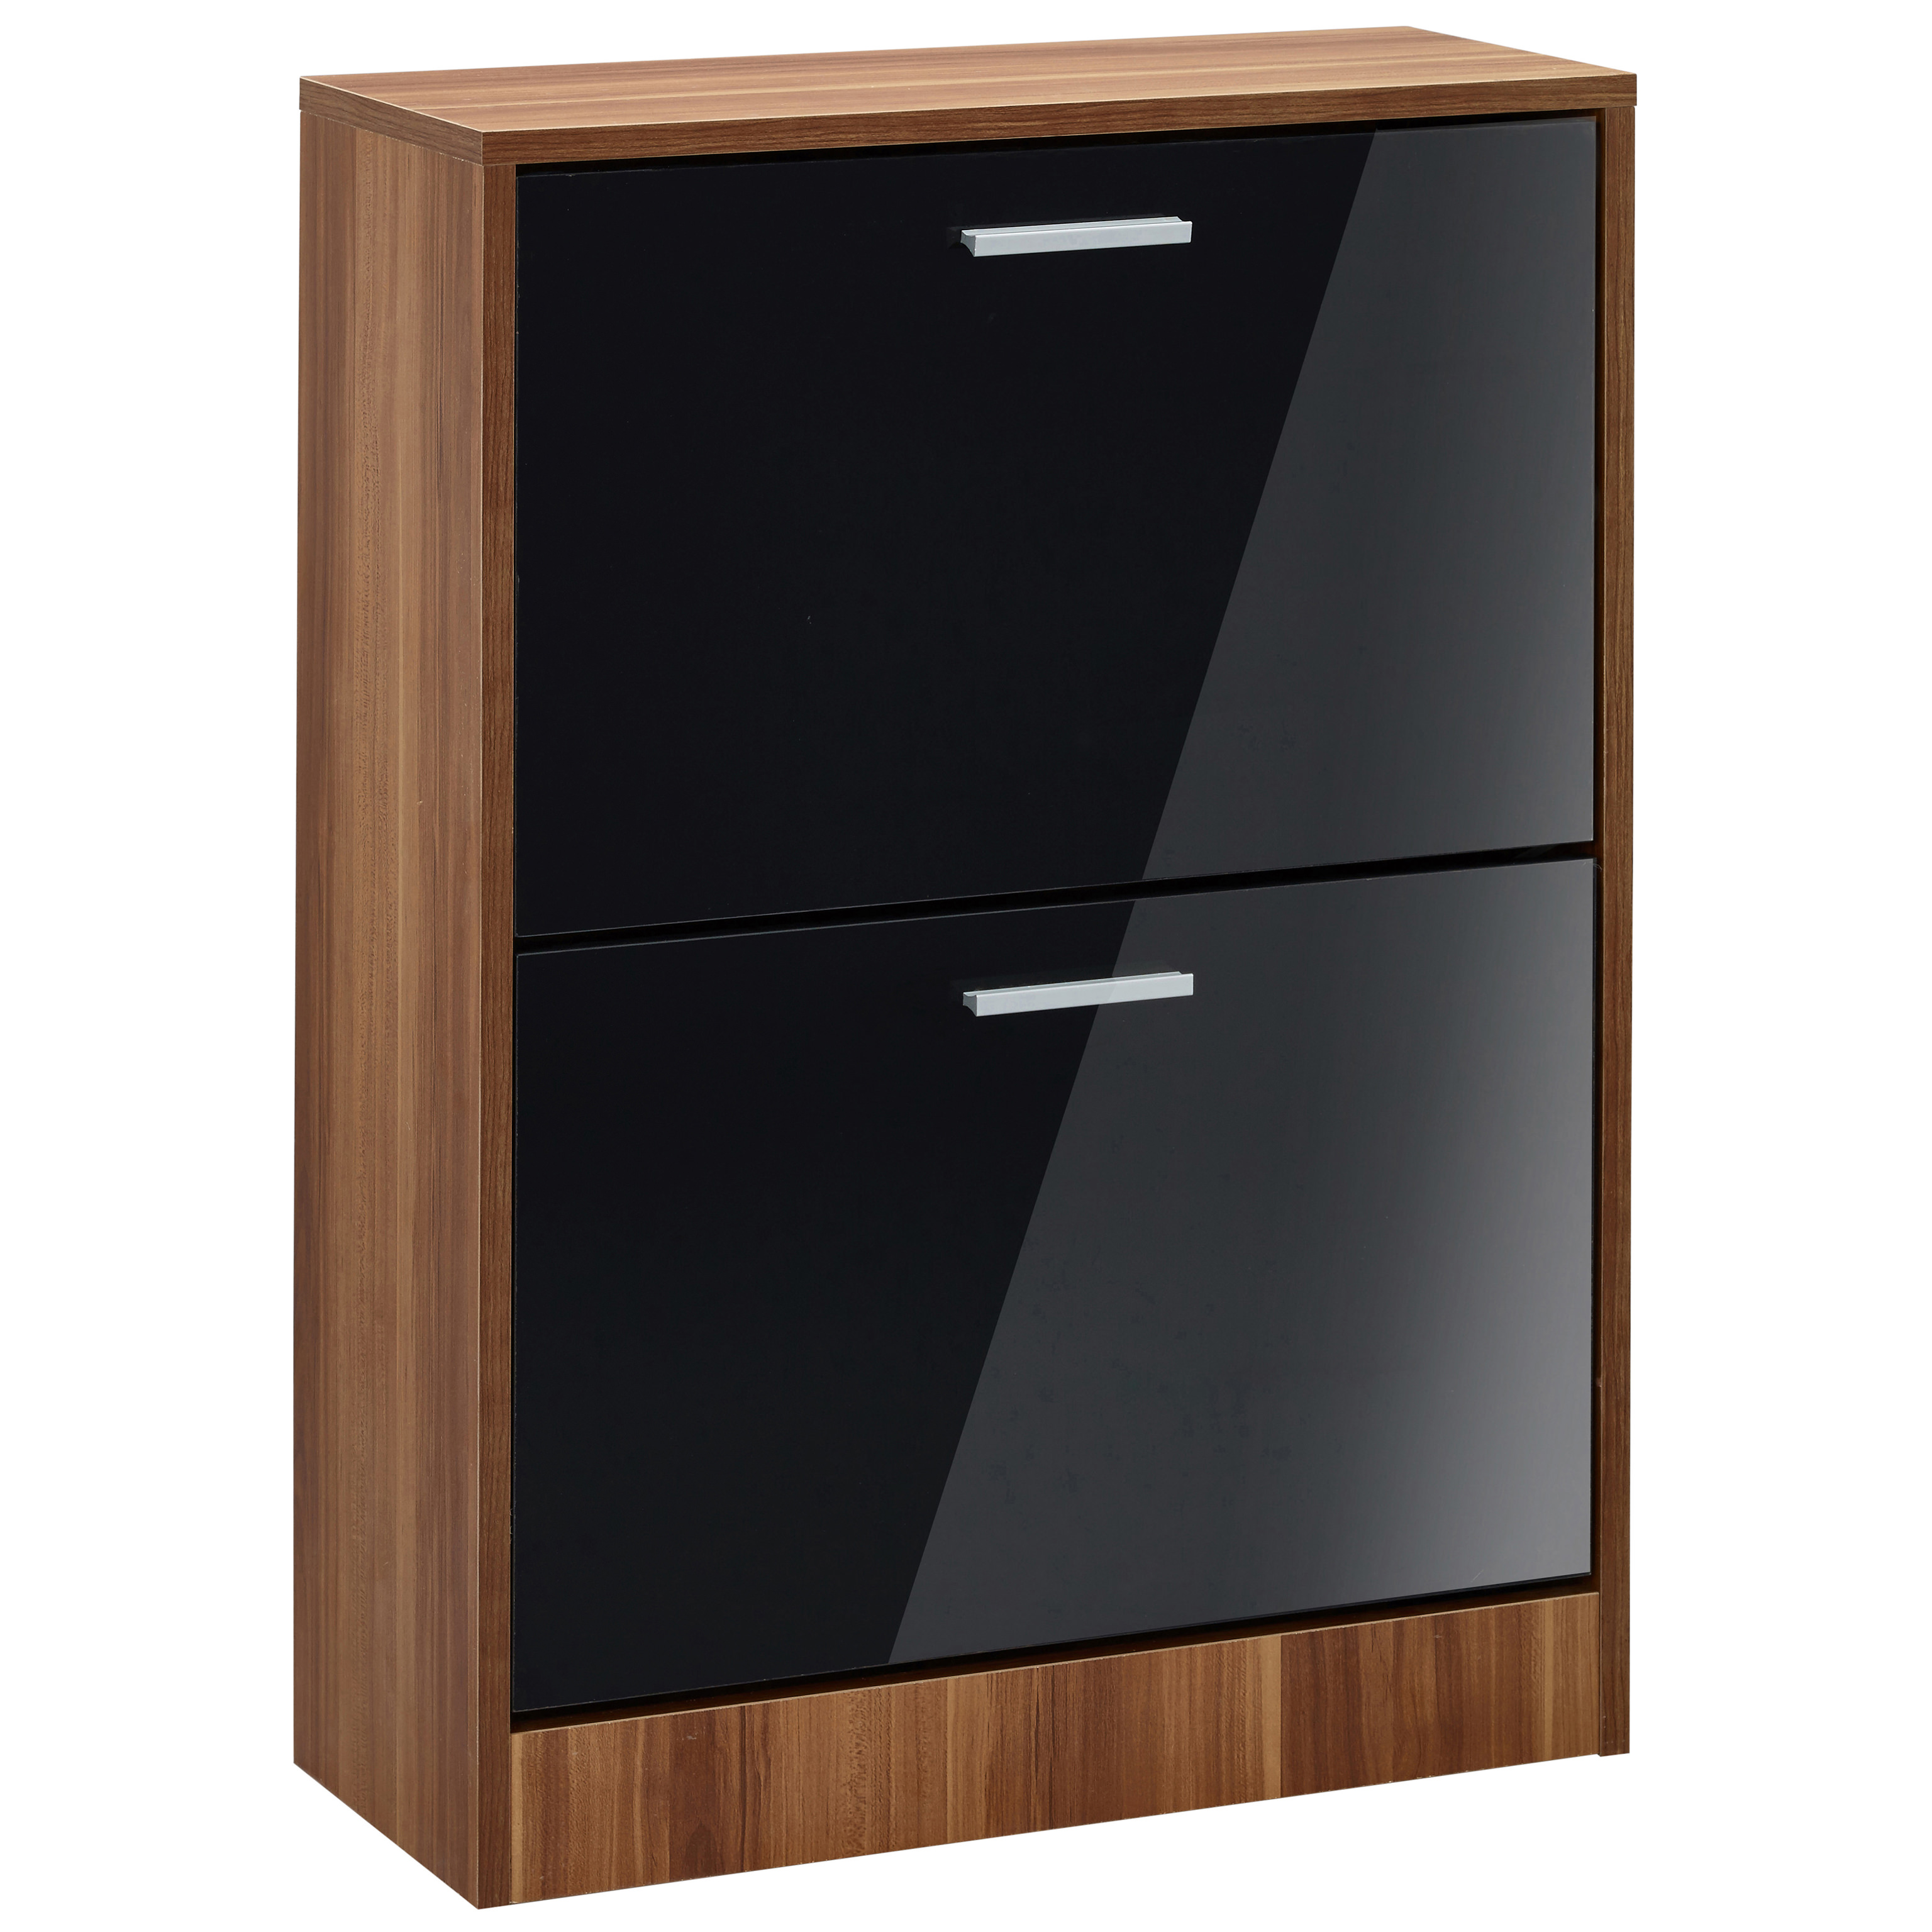 High gloss walnut finish shoe storage cupboard cabinet unit black white ebay - Bathroom cabinets black gloss ...